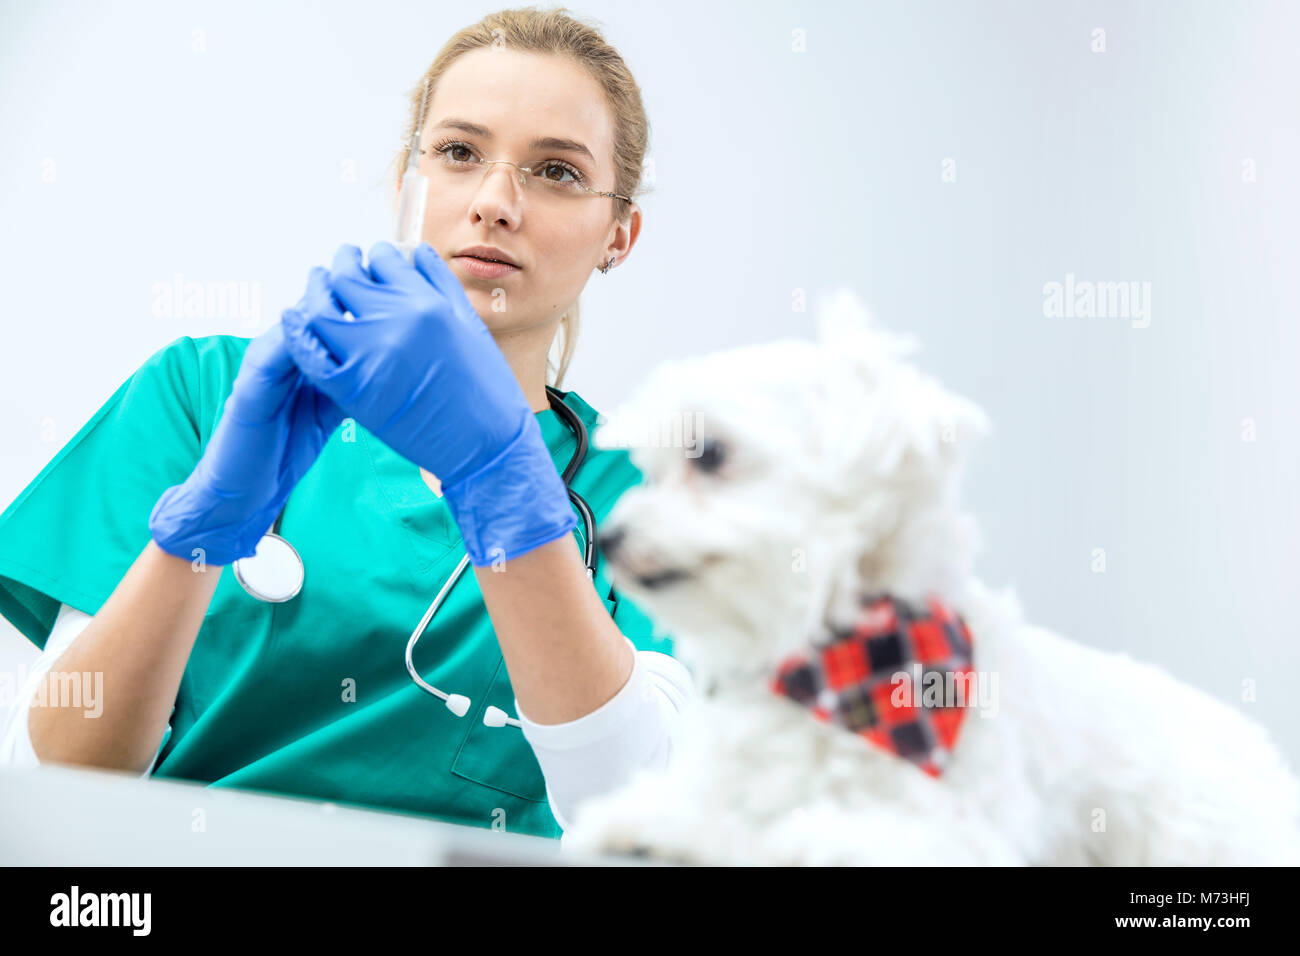 In focused view female vet prepares syringe to vaccinate. Dog awaits. - Stock Image